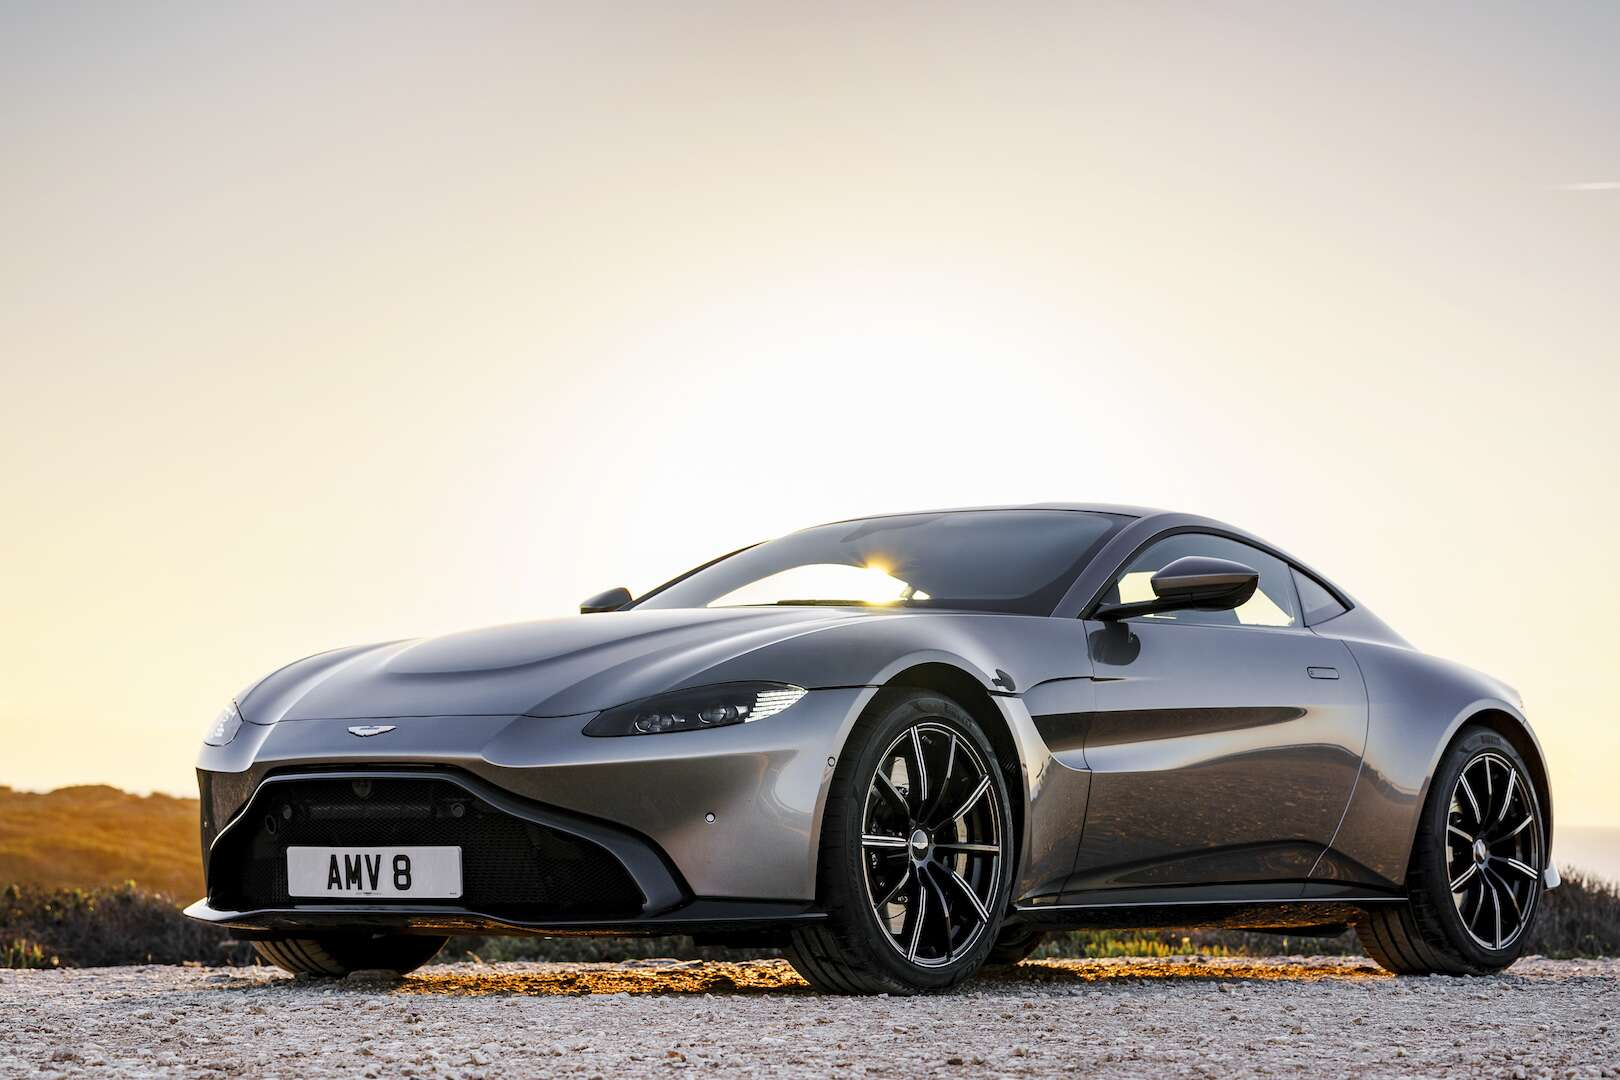 2019 Aston Martin Vantage First Drive Review: This 195-MPH